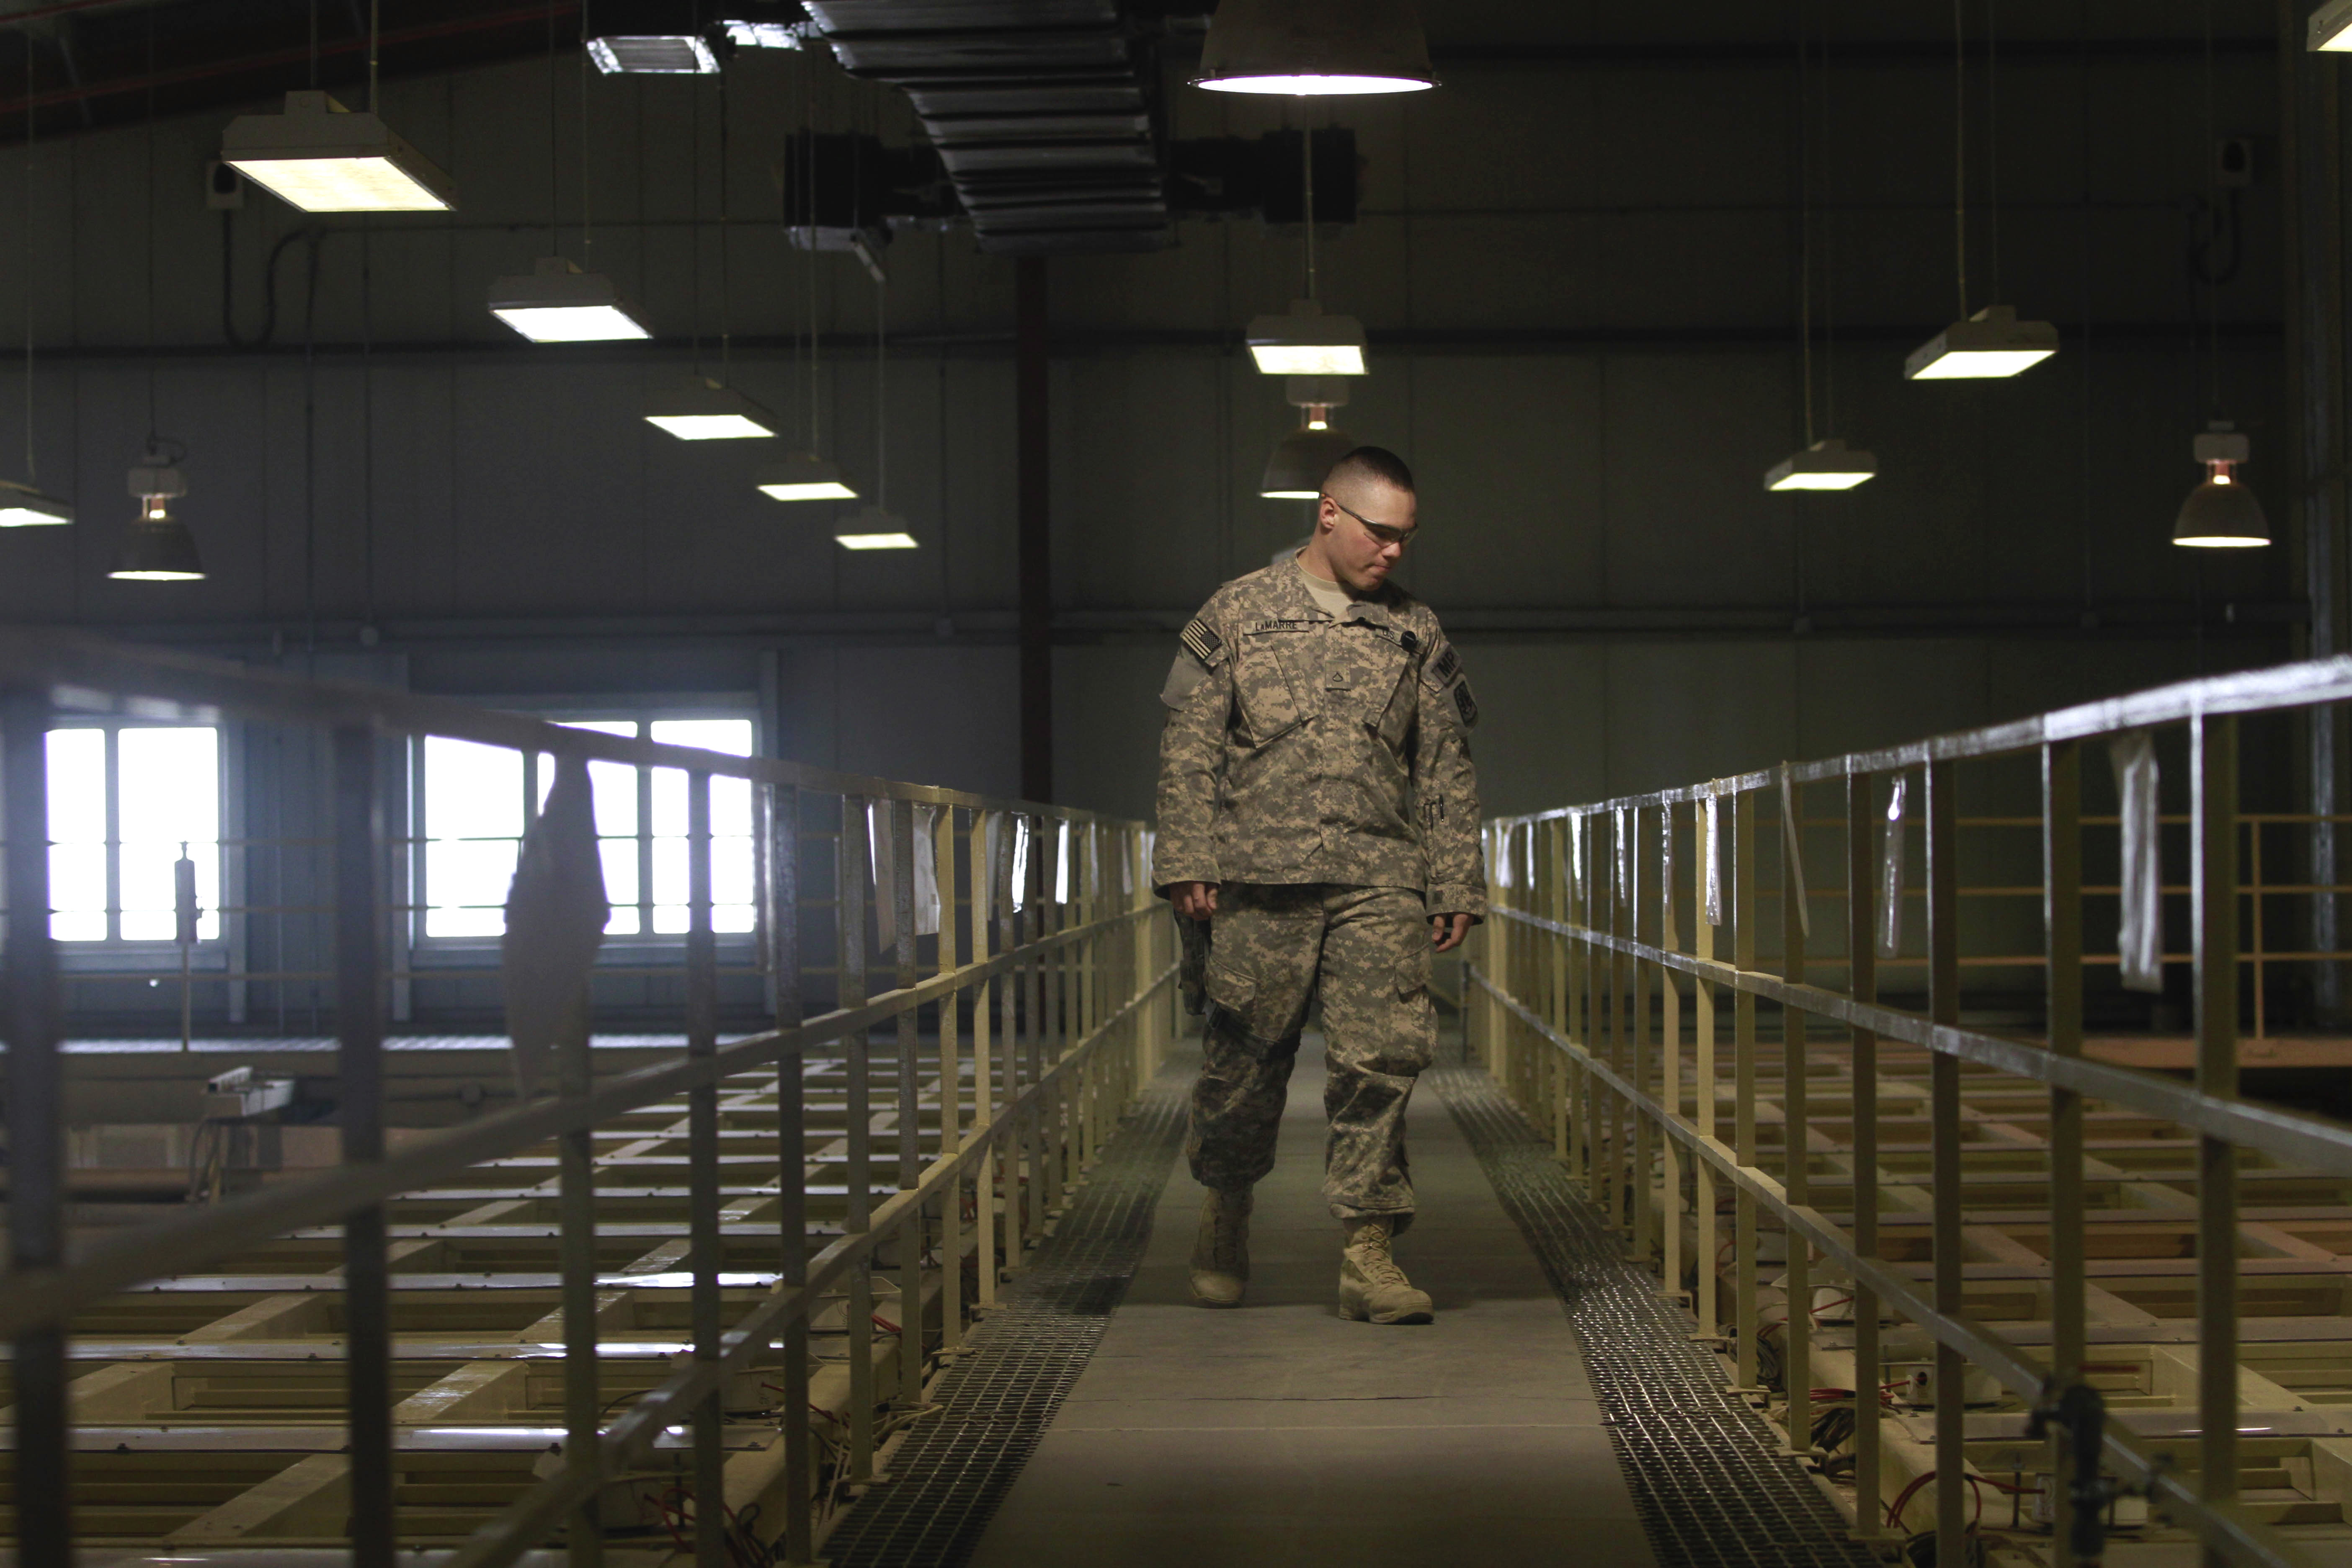 FILE - A U.S. military guard watches over detainee cells inside the Parwan detention facility near Bagram Air Field in Afghanistan, March 23, 2011. The Pentagon has denied operating secret jails in Afghanistan, although human rights groups and former...